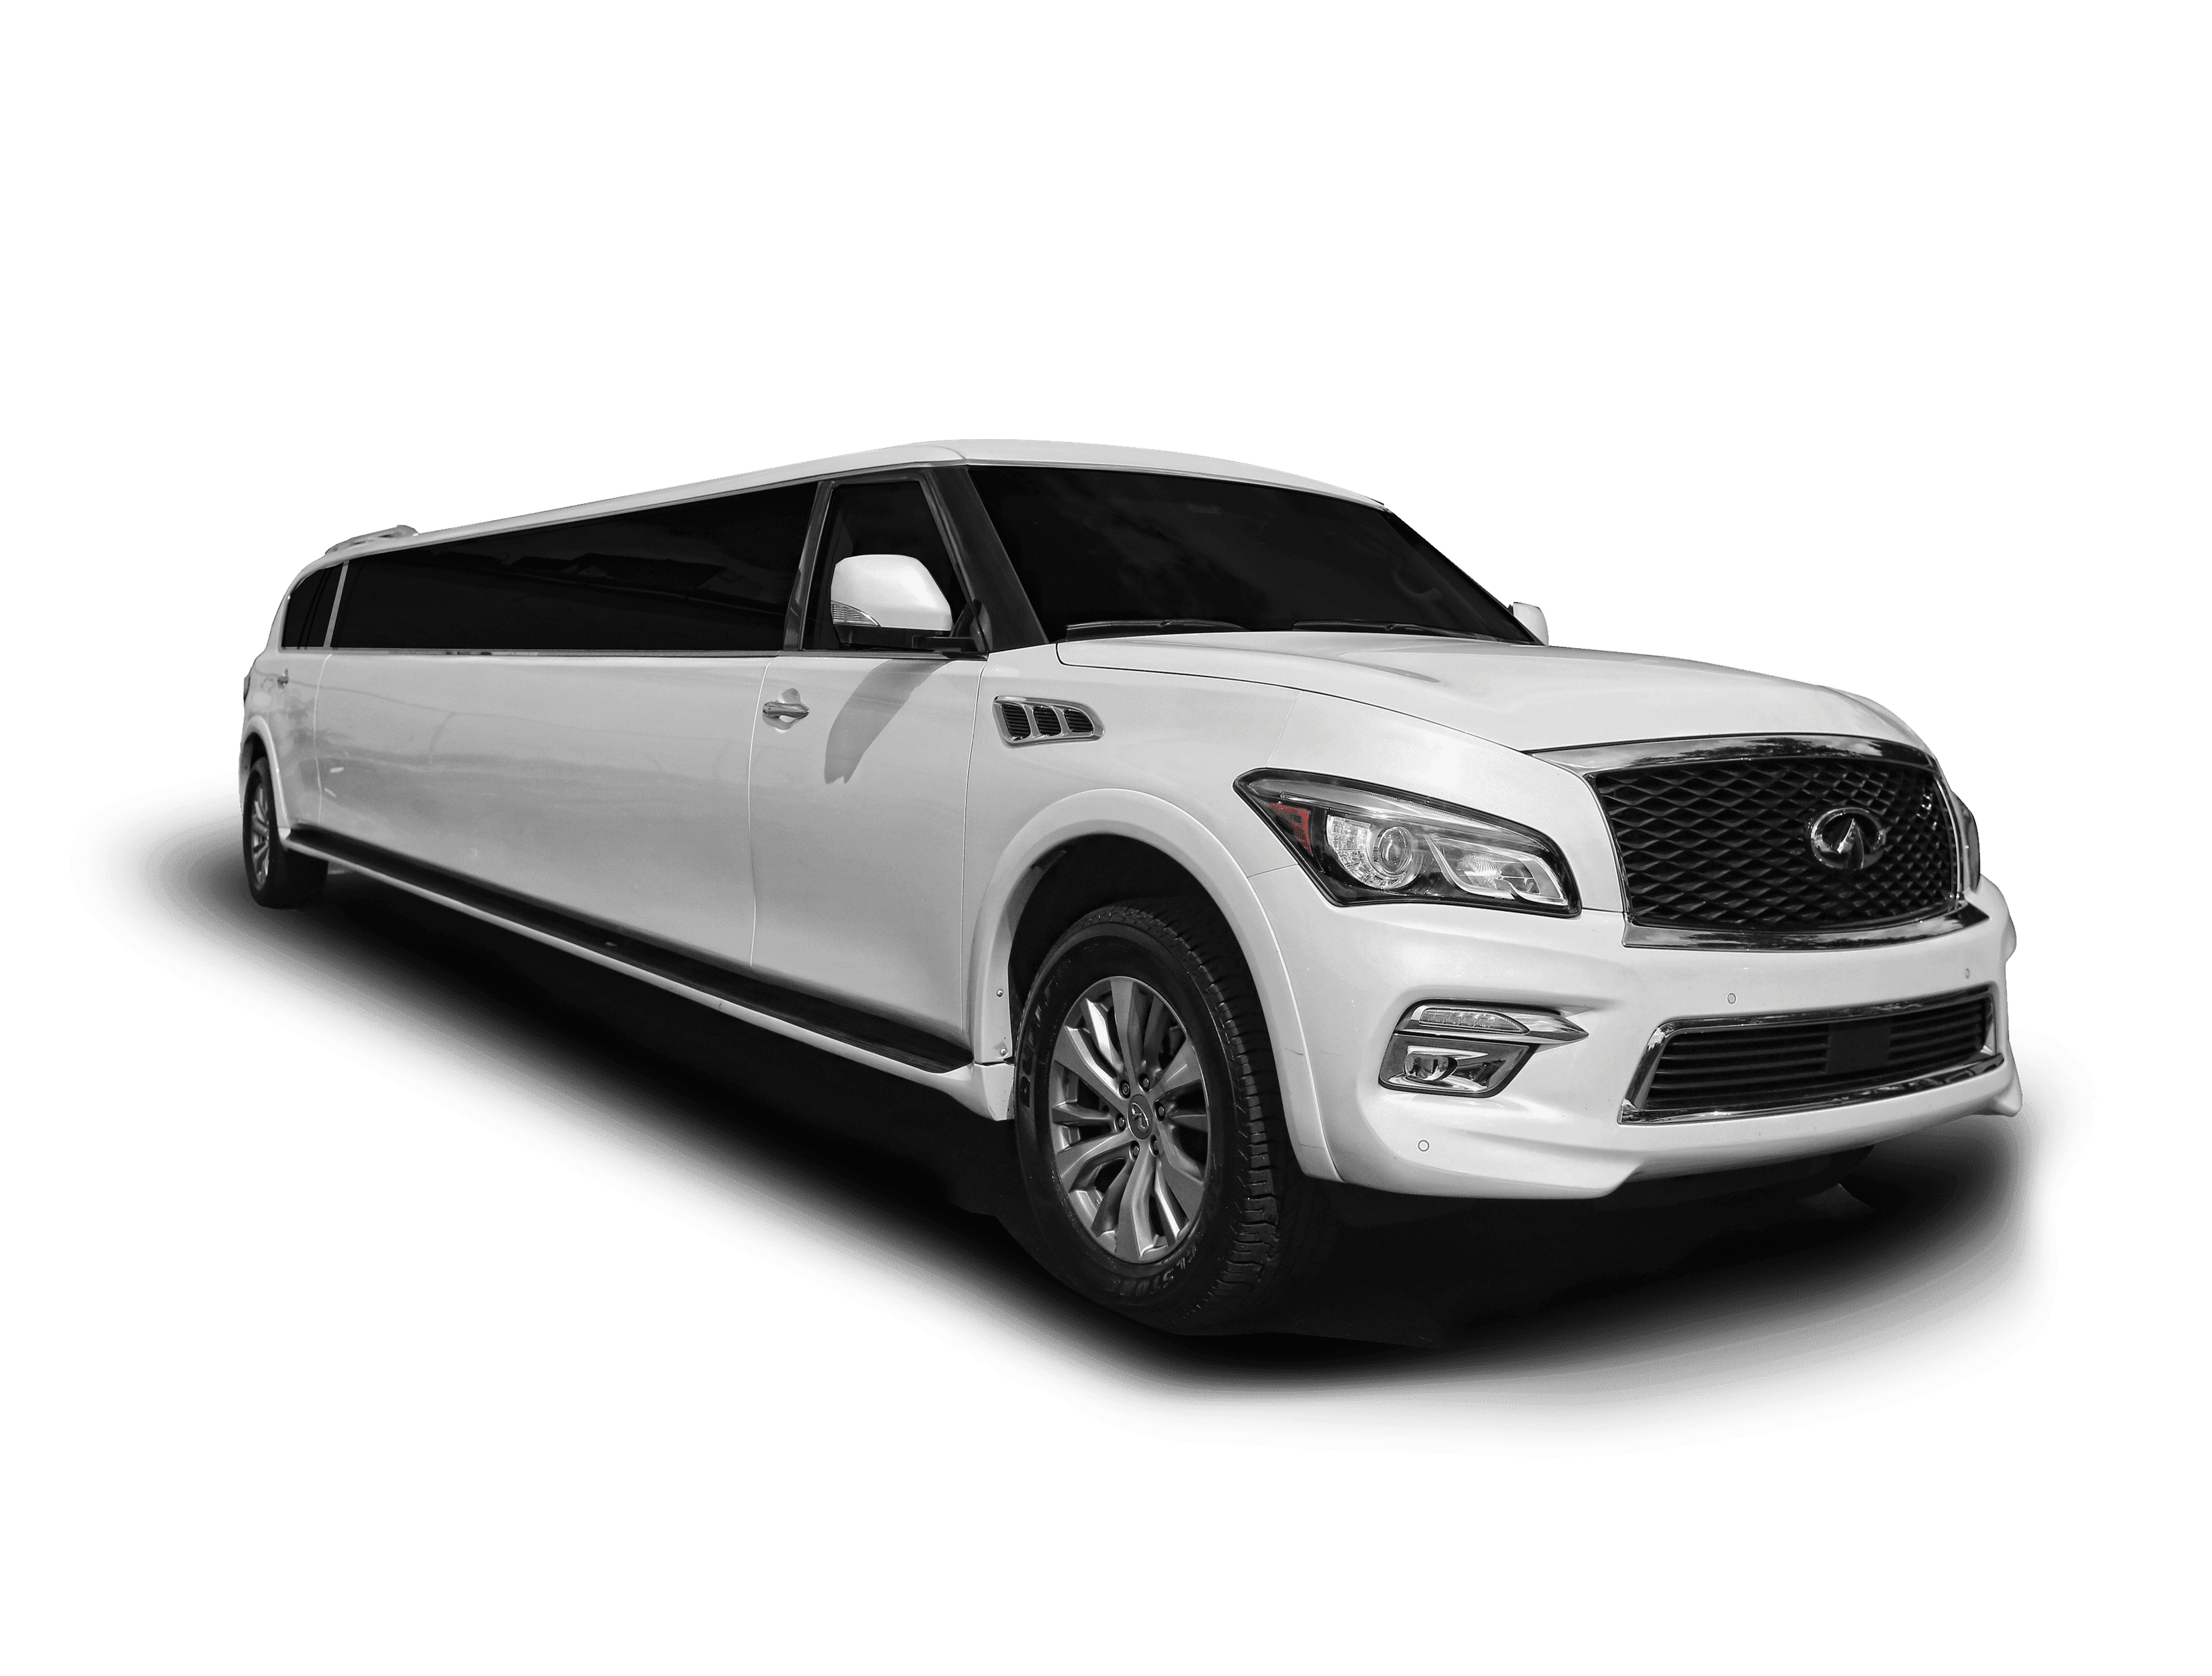 Infiniti QX 80 limousine for NJ - NY Bachelor Party Limo Rental